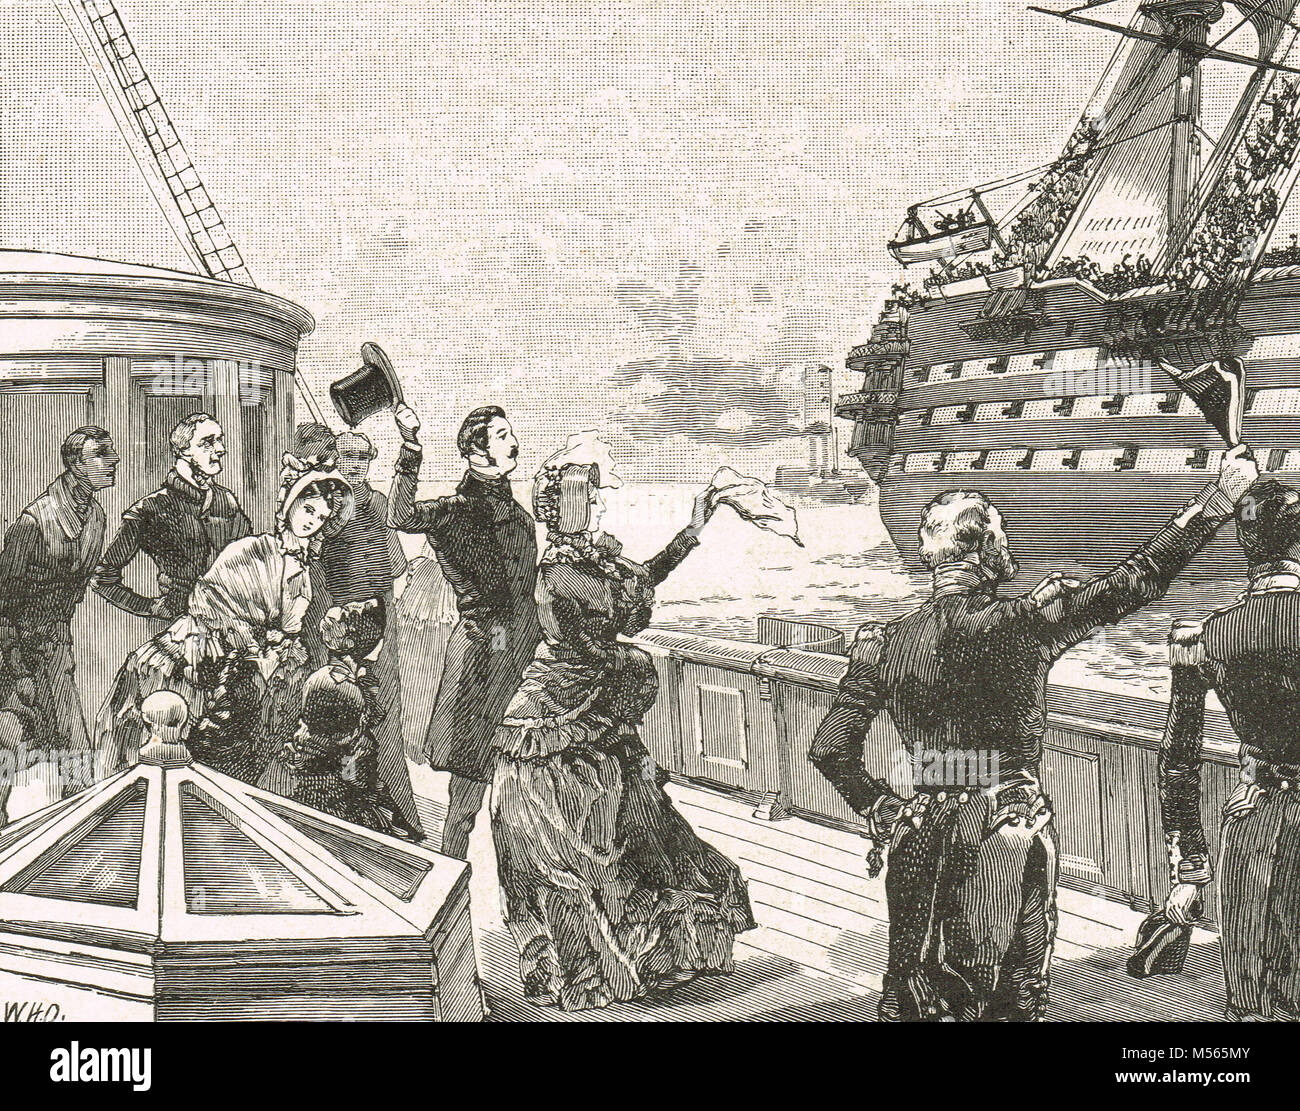 Queen Victoria waving farewell to HMS Duke of Wellington, 1854, departing for the Crimean War - Stock Image